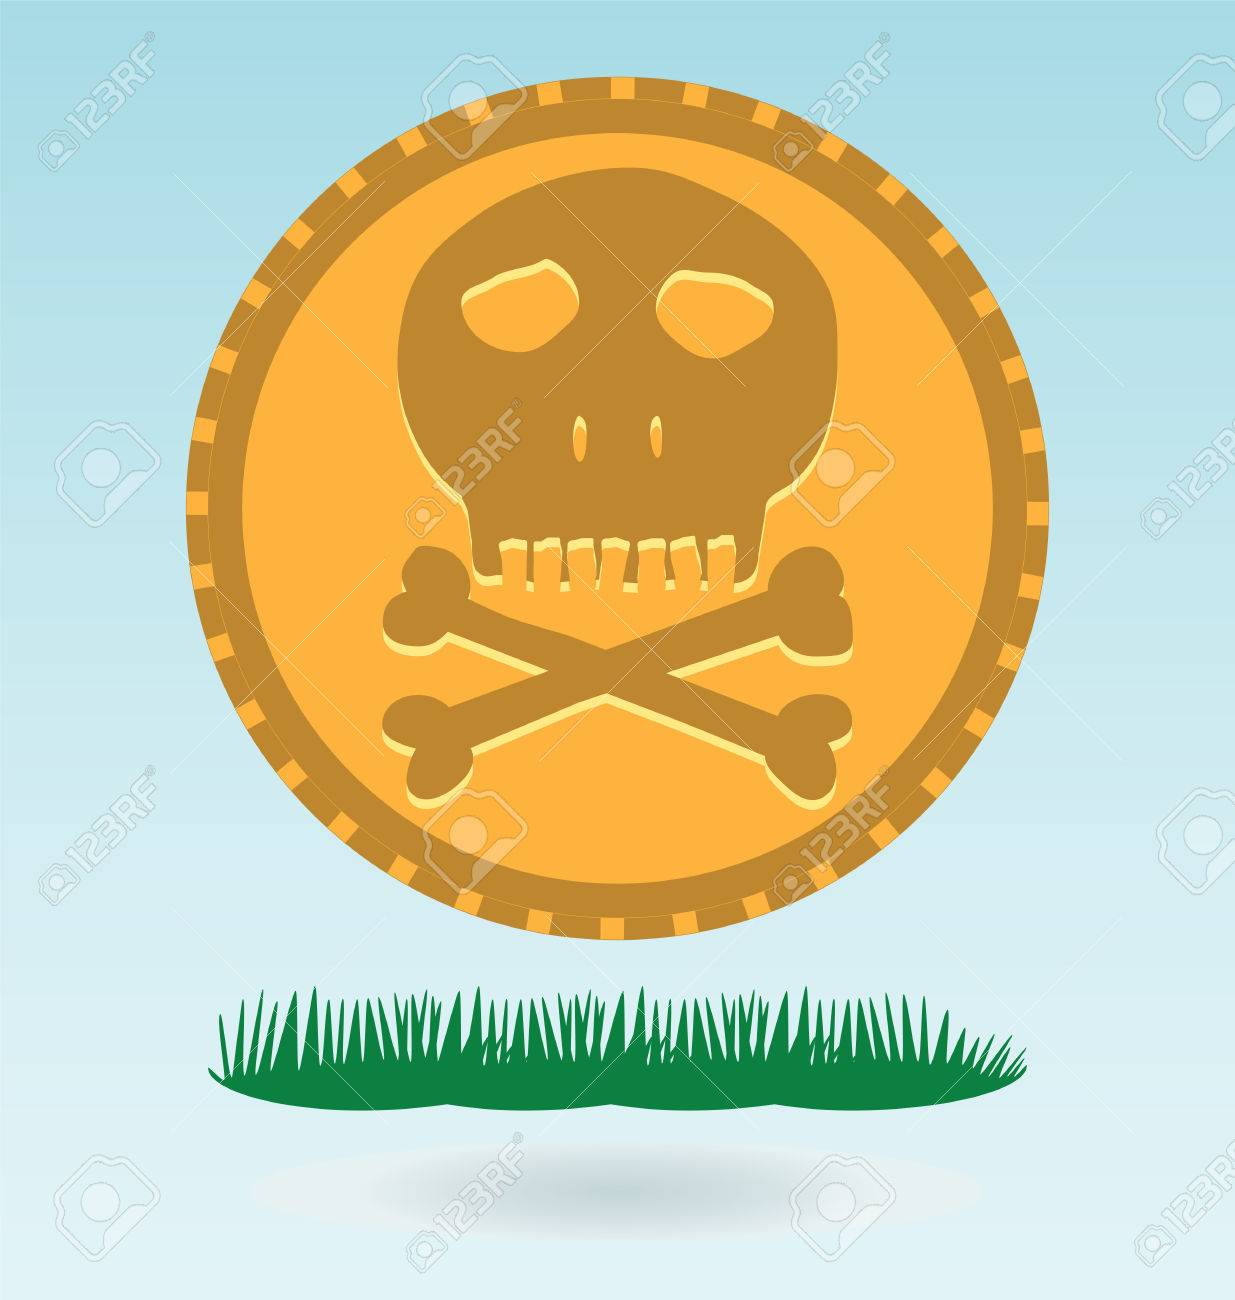 Gold Coin With A Skull And Crossbones Symbol Of Pirates Danger